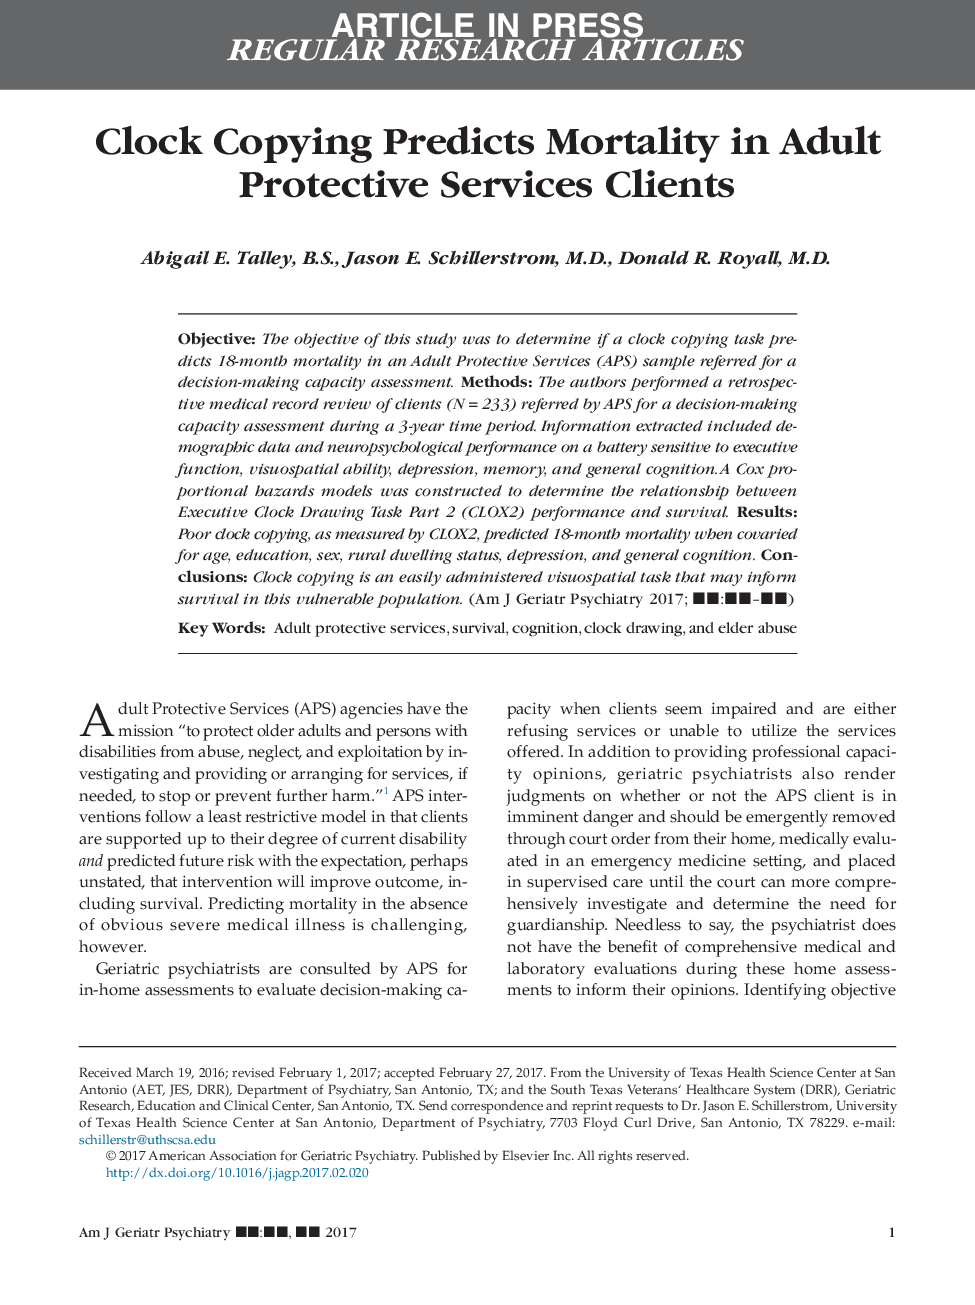 Clock Copying Predicts Mortality in Adult Protective Services Clients